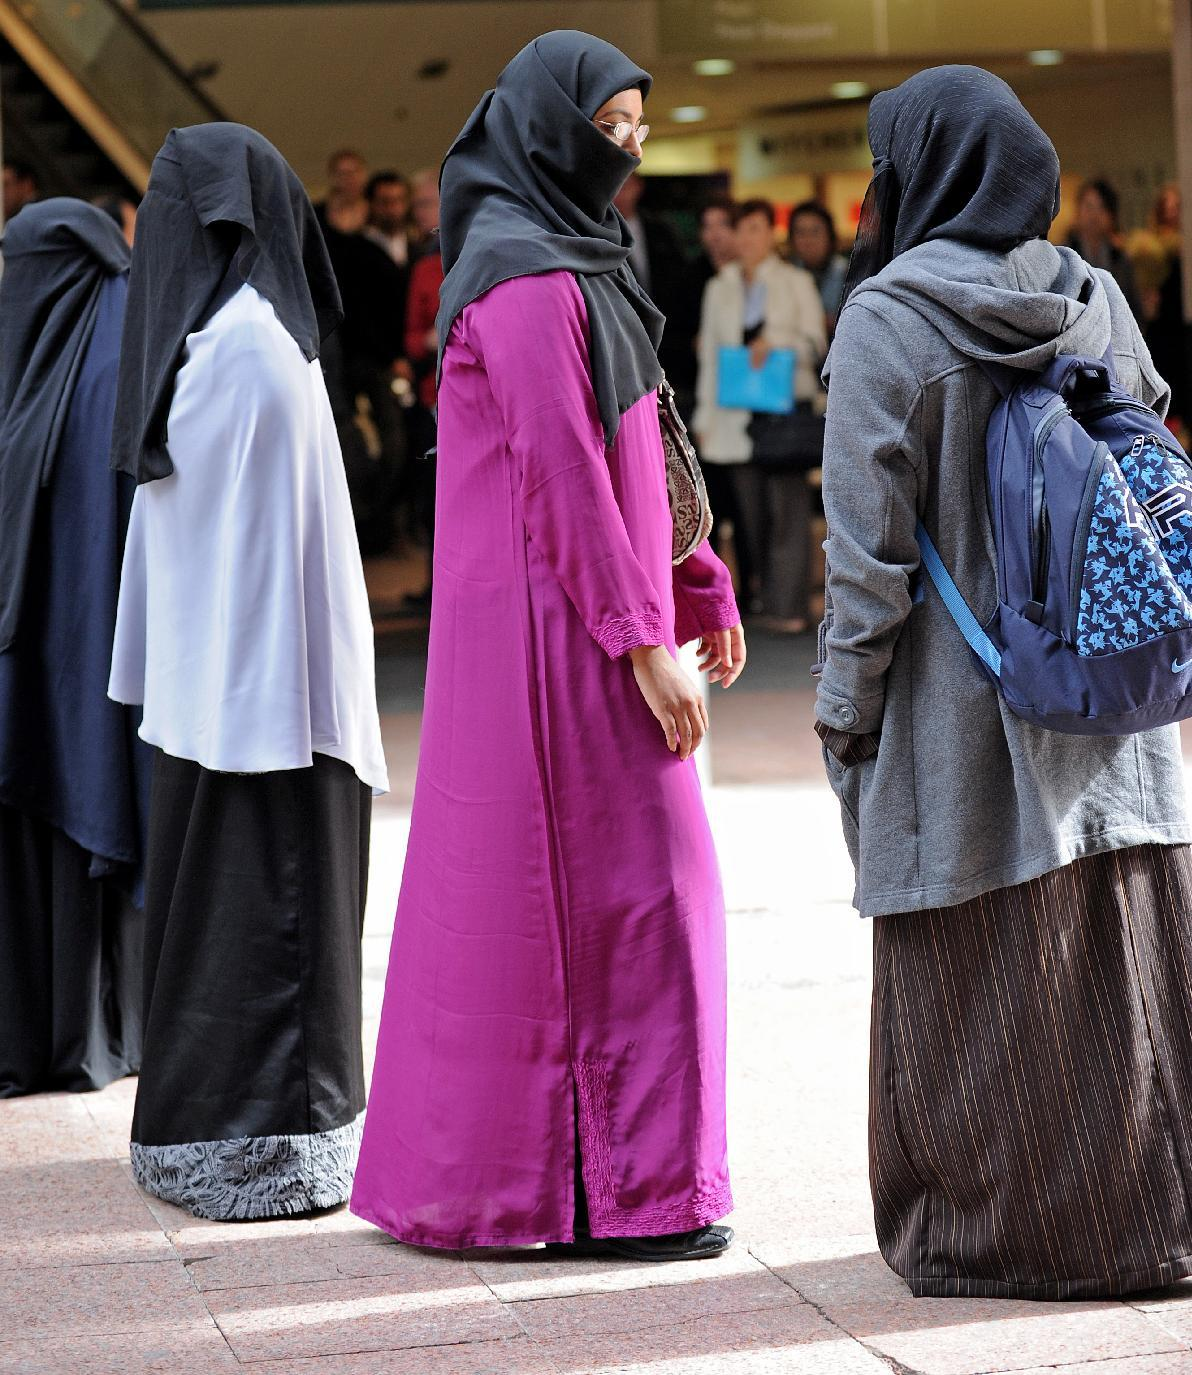 A file photo shows a rally in Sydney in 2010 highlighting burqa bans in Europe. Australia has scrapped a plan to segregate women wearing Islamic dress at Parliament House (AFP Photo/Greg Wood)